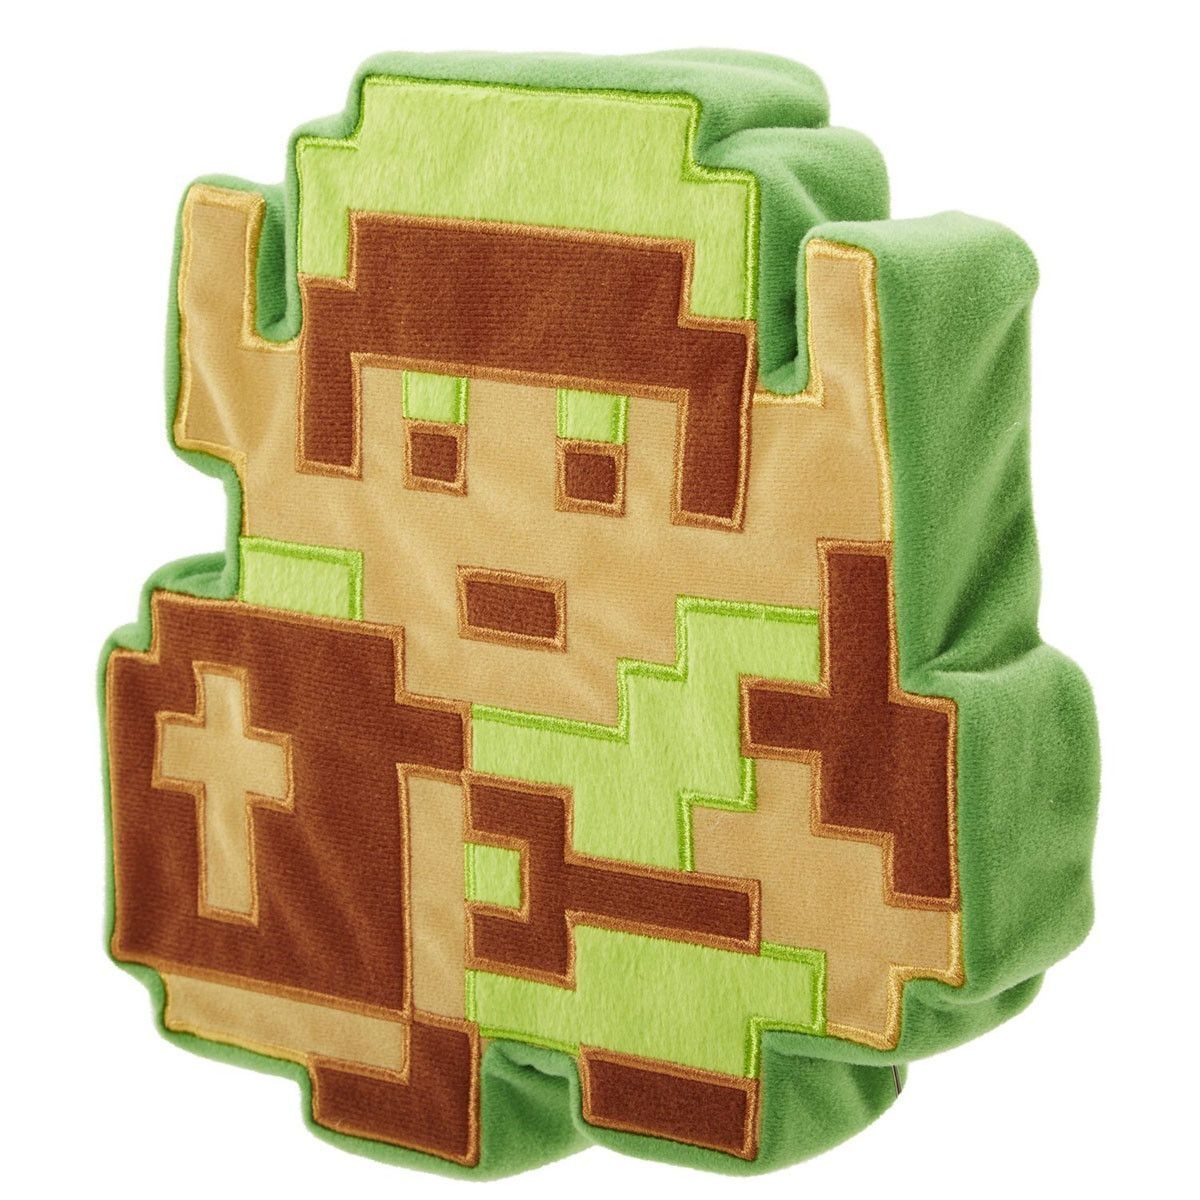 This is a world of nintendo zelda link bit plush figure this is